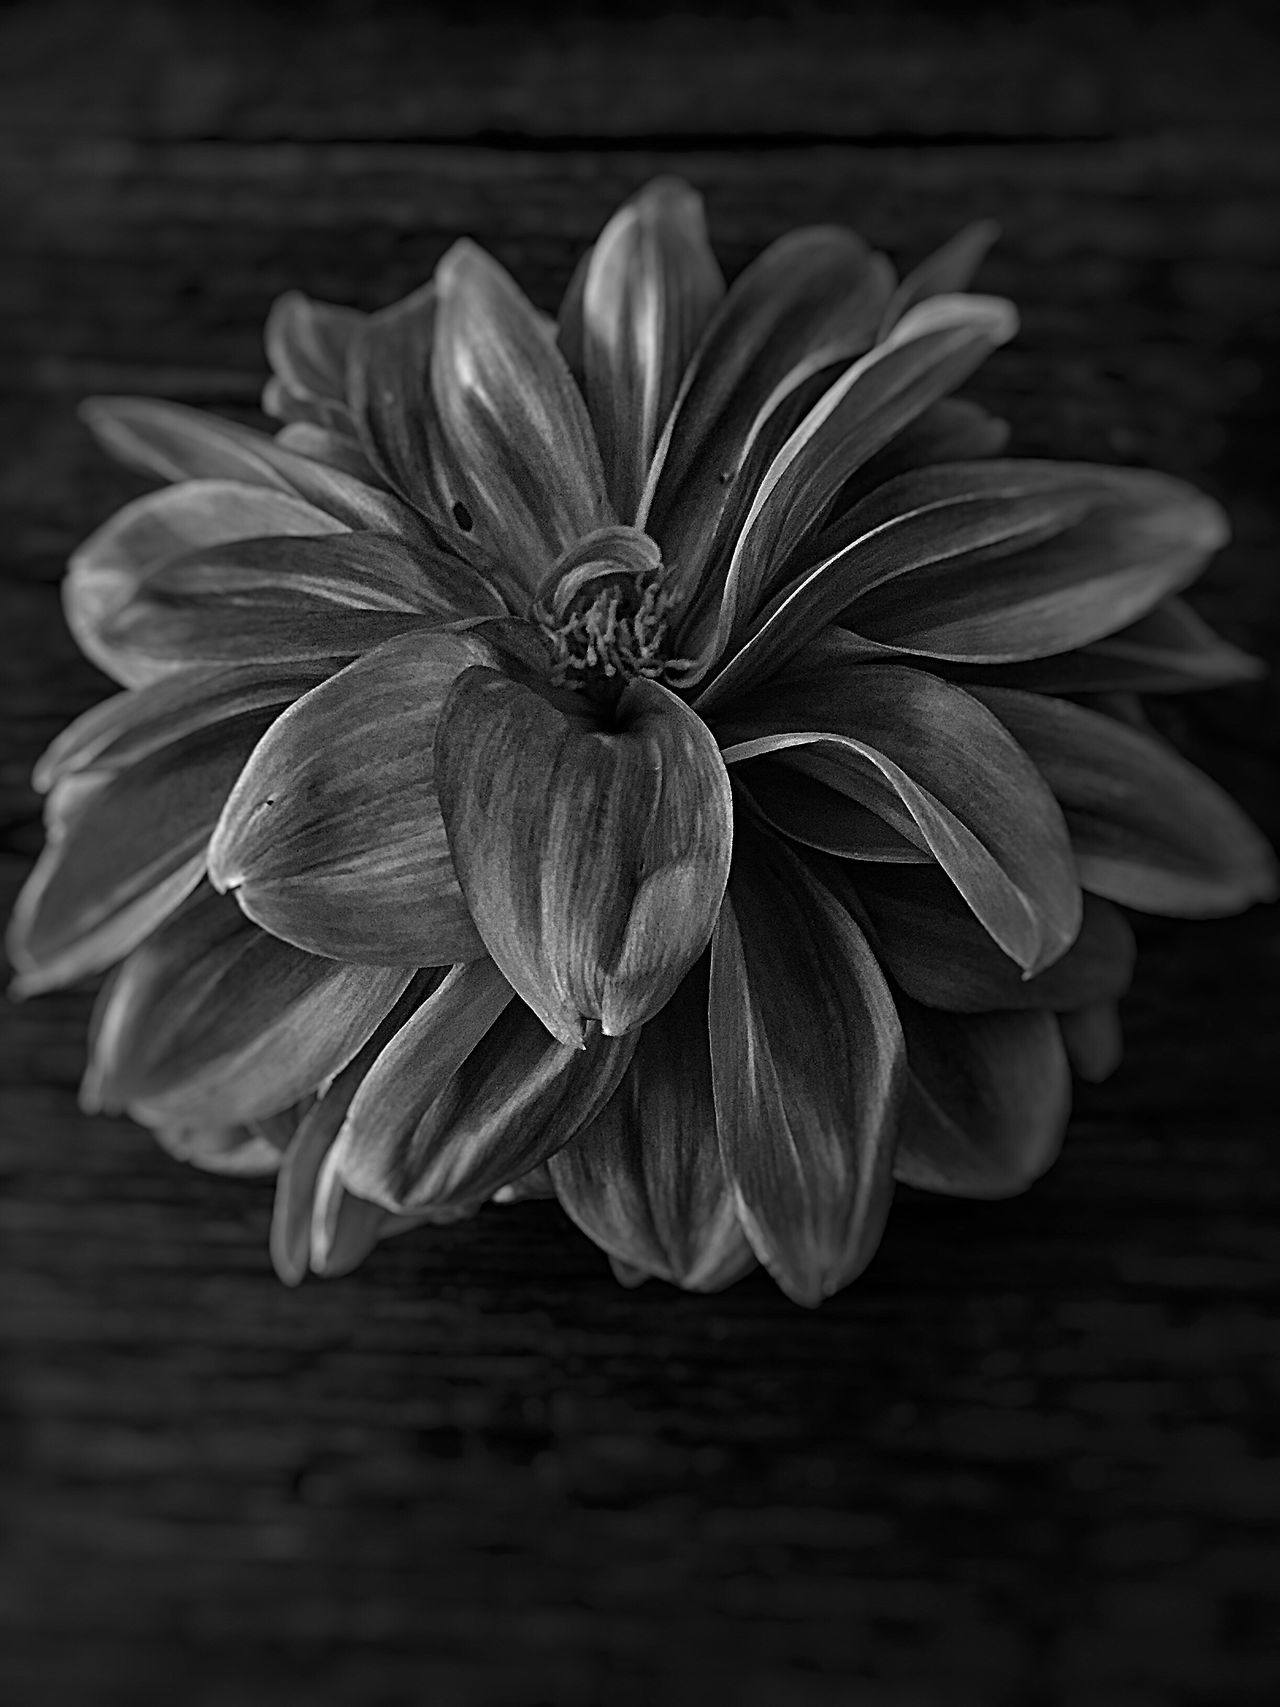 Flowers Flower Closeup Close-up On Wood Wood Blackandwhite Black And White Blackandwhite Photography Black And White Photography Blossom